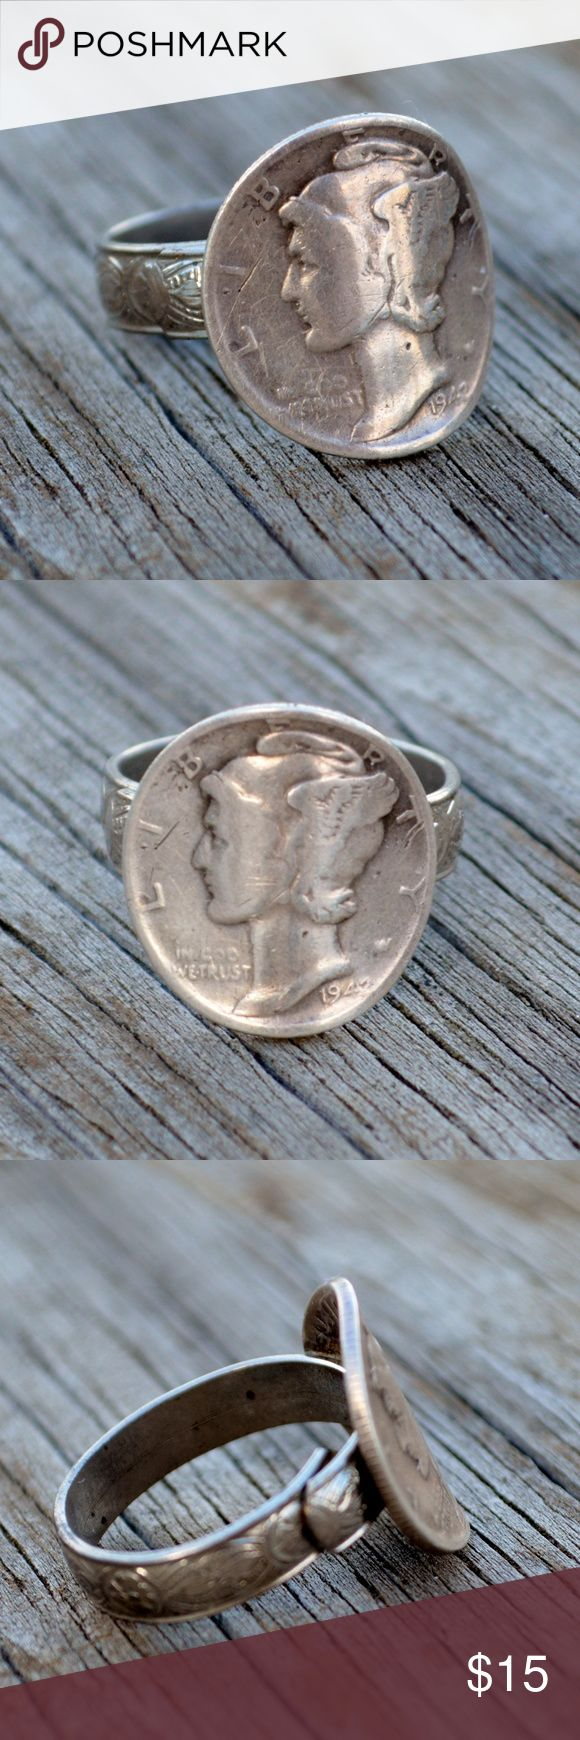 Mercury Dime Adjustable Silver Band Ring Size 8 Up for sale is one vintage ring, as pictured. It features a silver tone metal band that is adjustable (currently sized to about a size 8) with a silver Mercury Dime soldered to the front at a curvature. It is in good, vintage condition. It is a really cool coin ring, and appears to have been hand made. It is in good condition and ready for wear. Jewelry Rings